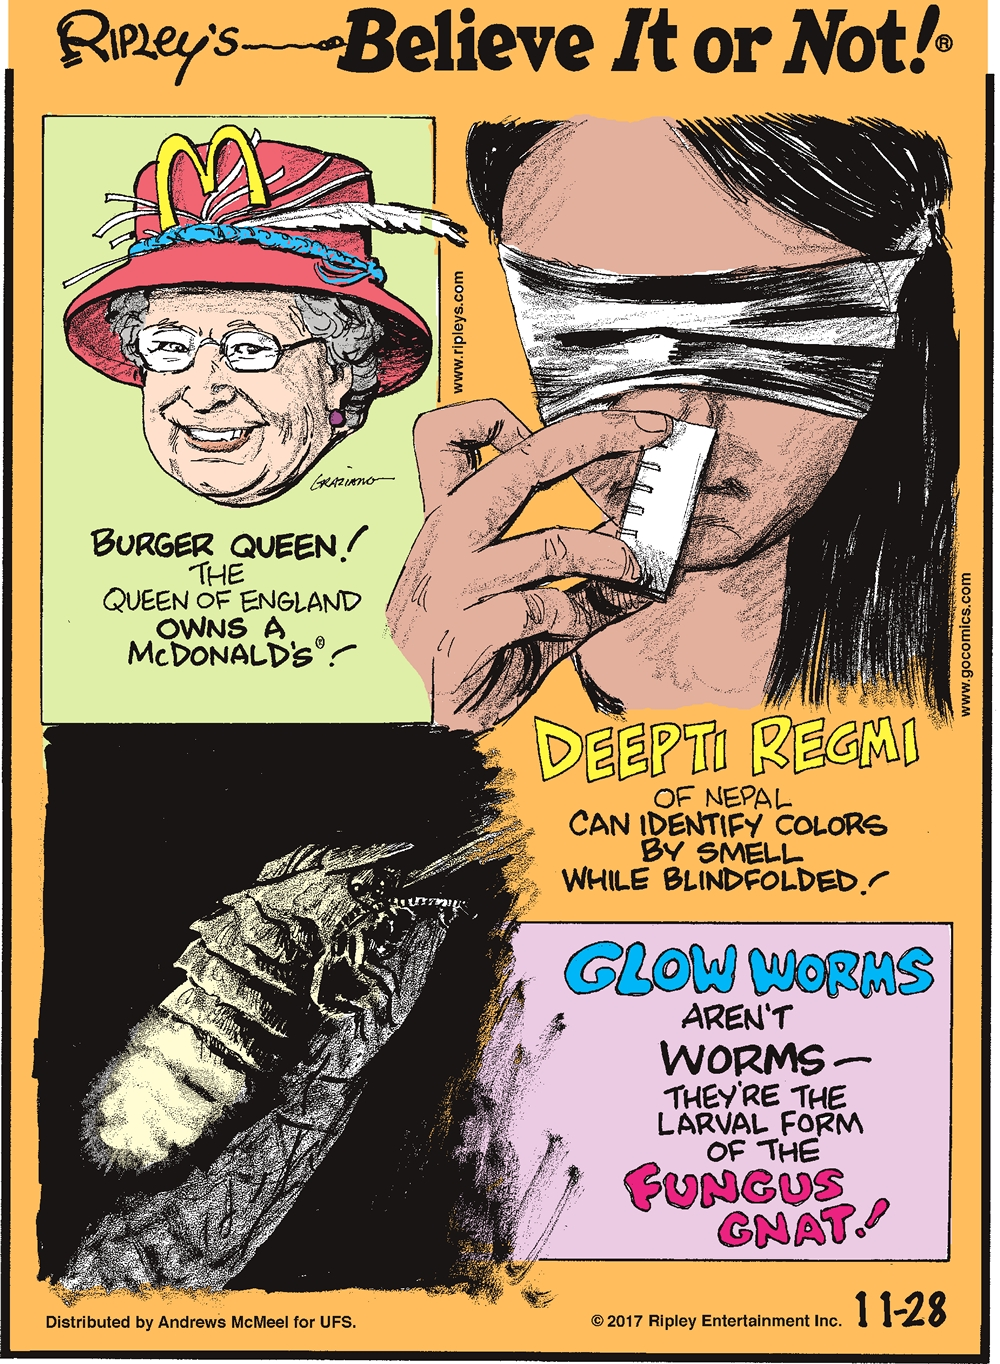 Burger Queen! The Queen of England owns a McDonald's!-------------------- Deepti Regmi of Nepal can identify colors by smell while blindfolded!-------------------- Glow worms aren't worms - they're the larval form of the fungus gnat!